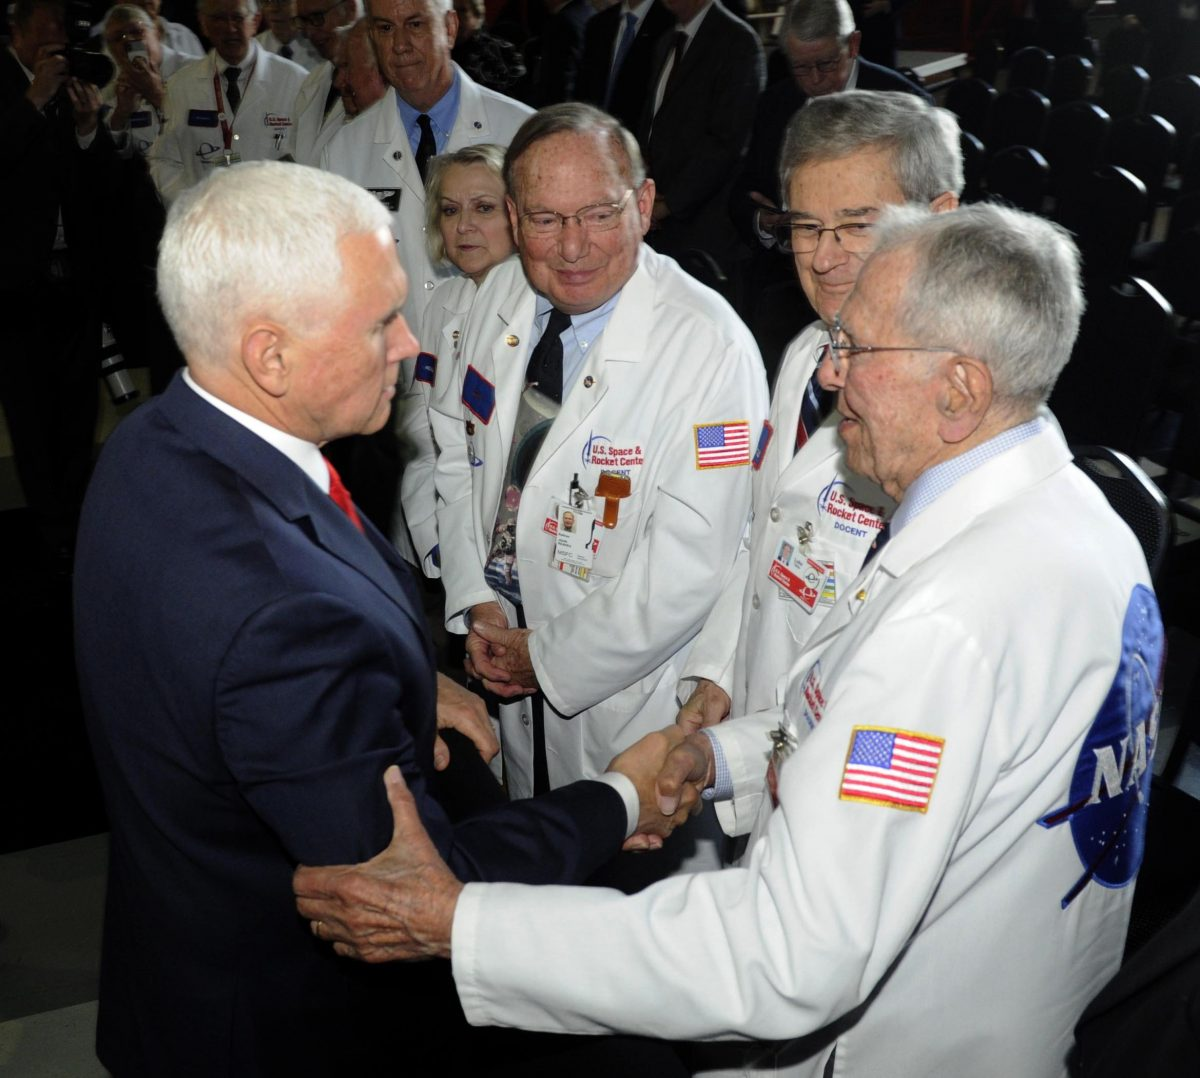 Mike Pence speaks with museum docents